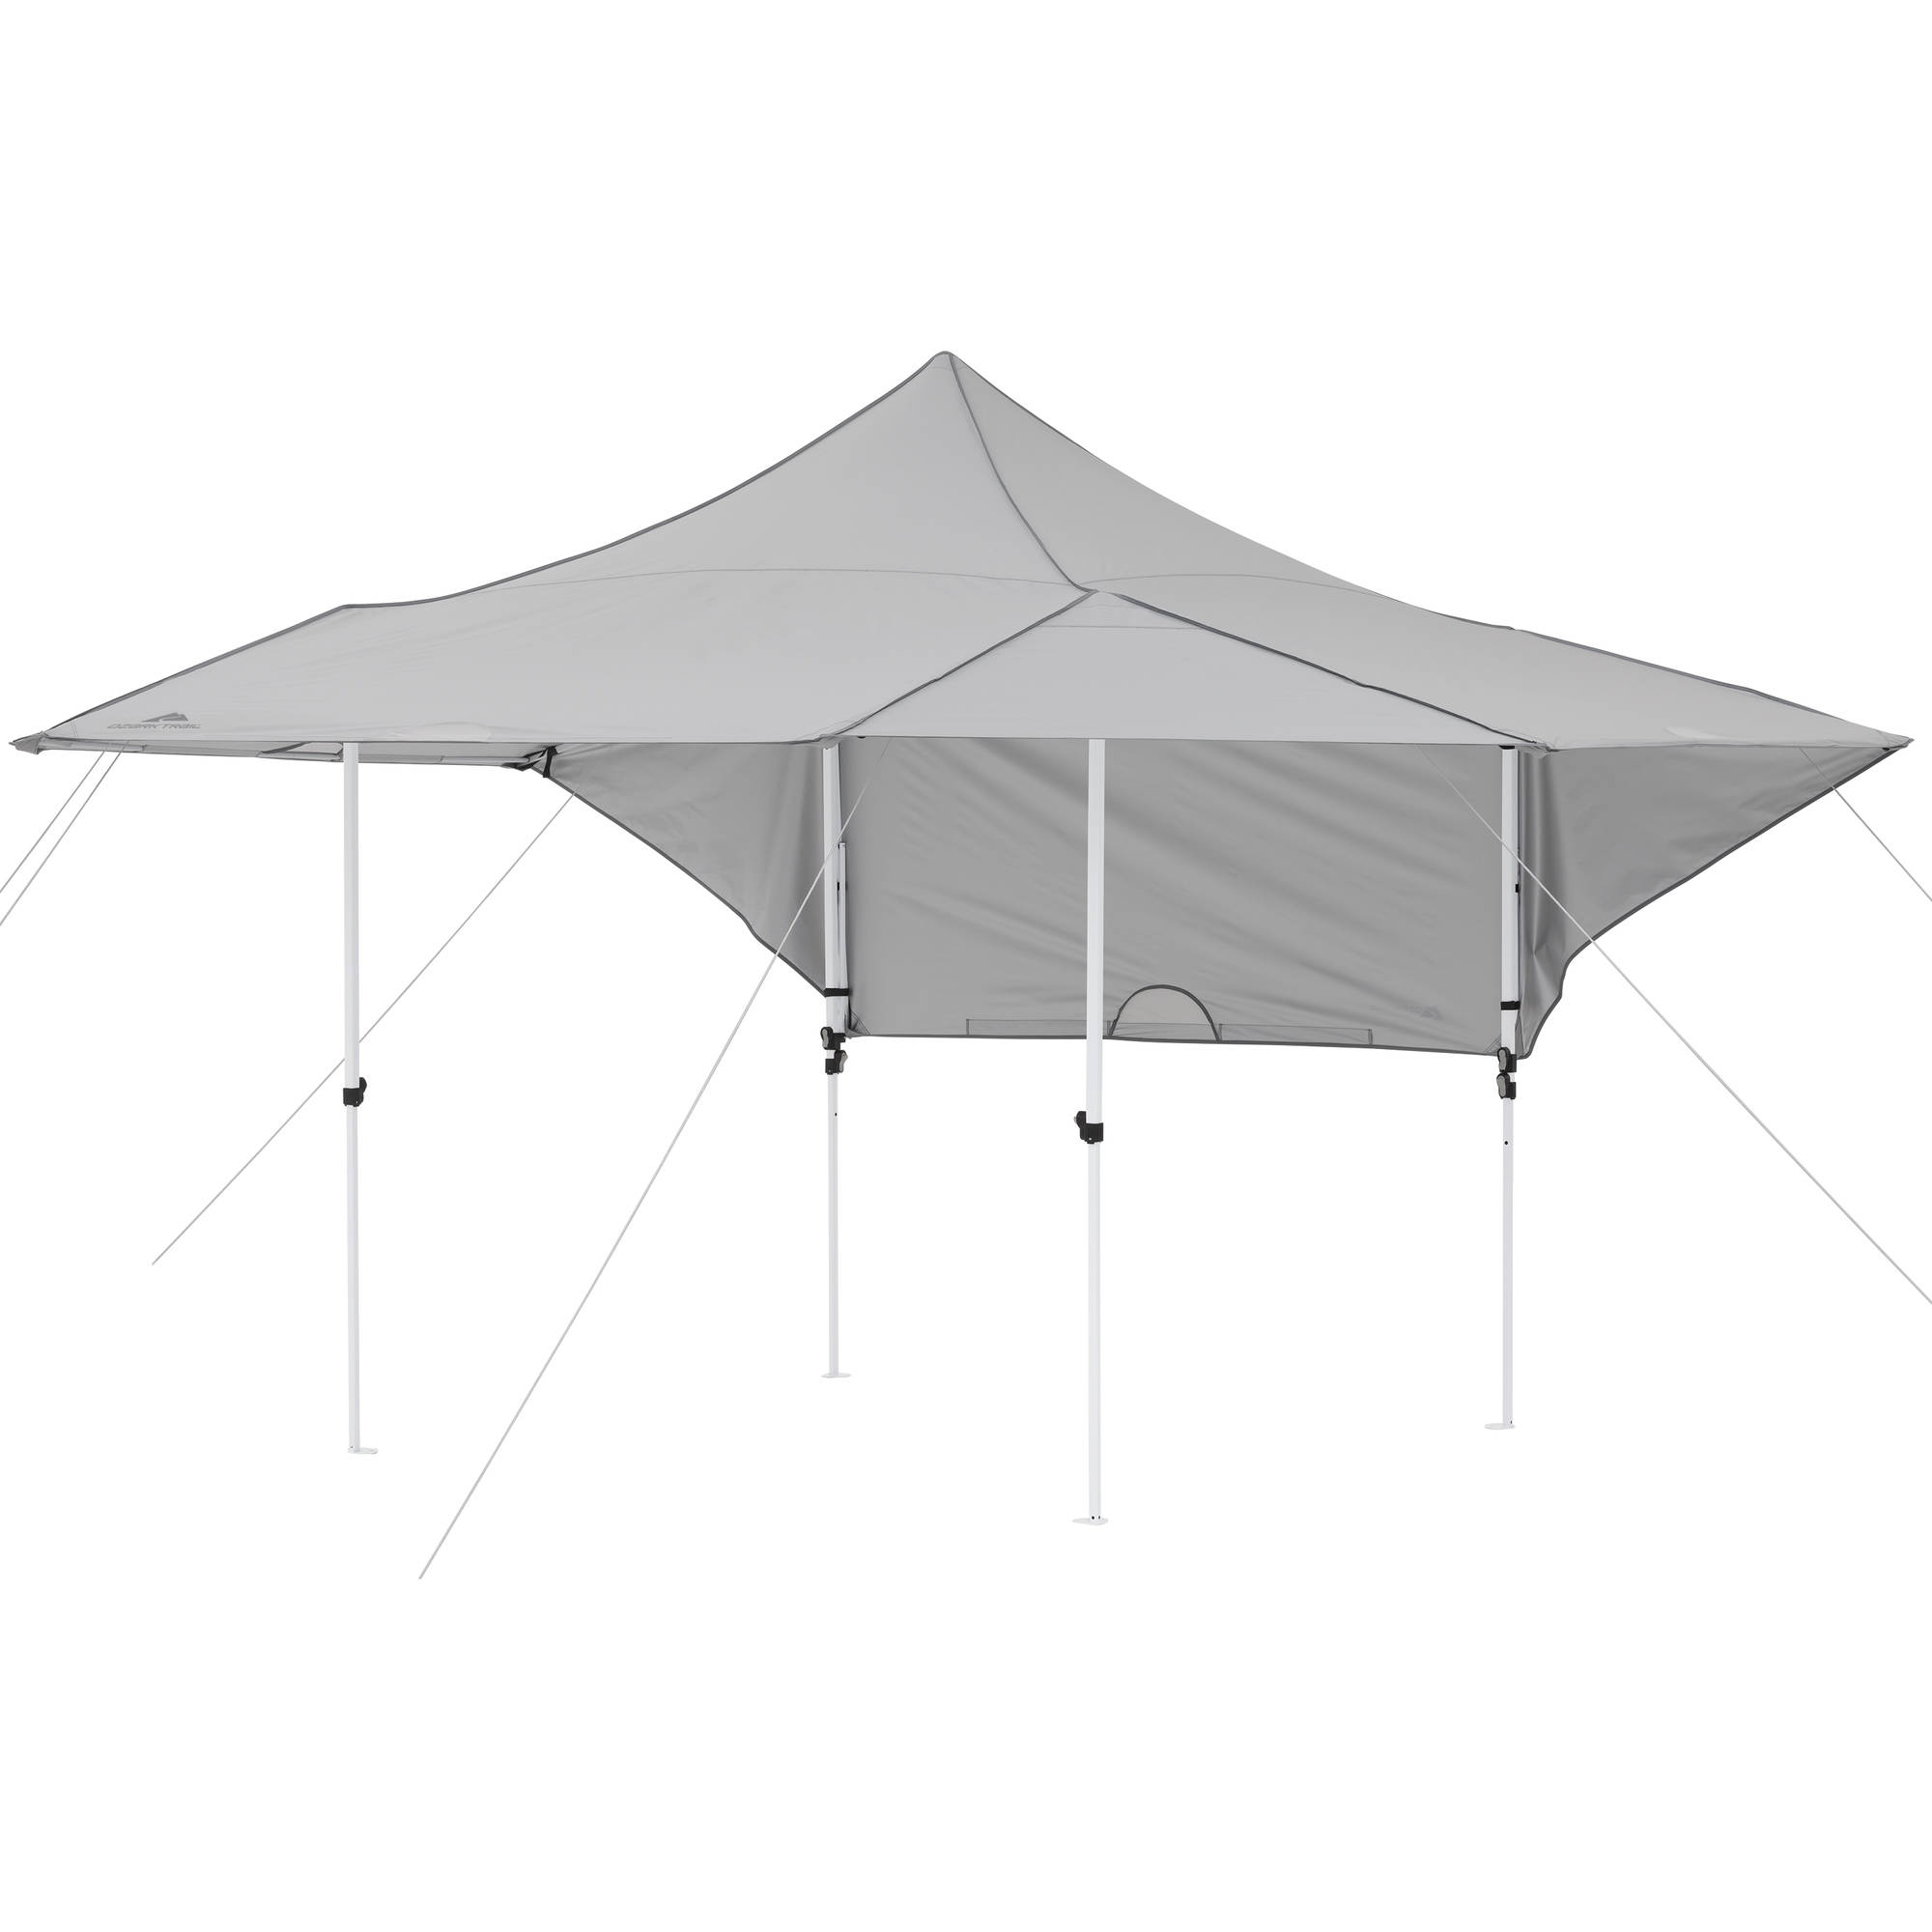 half off ecf77 46f7c Ozark Trail 16' x 16' Instant Canopy with Convertible Walls ...